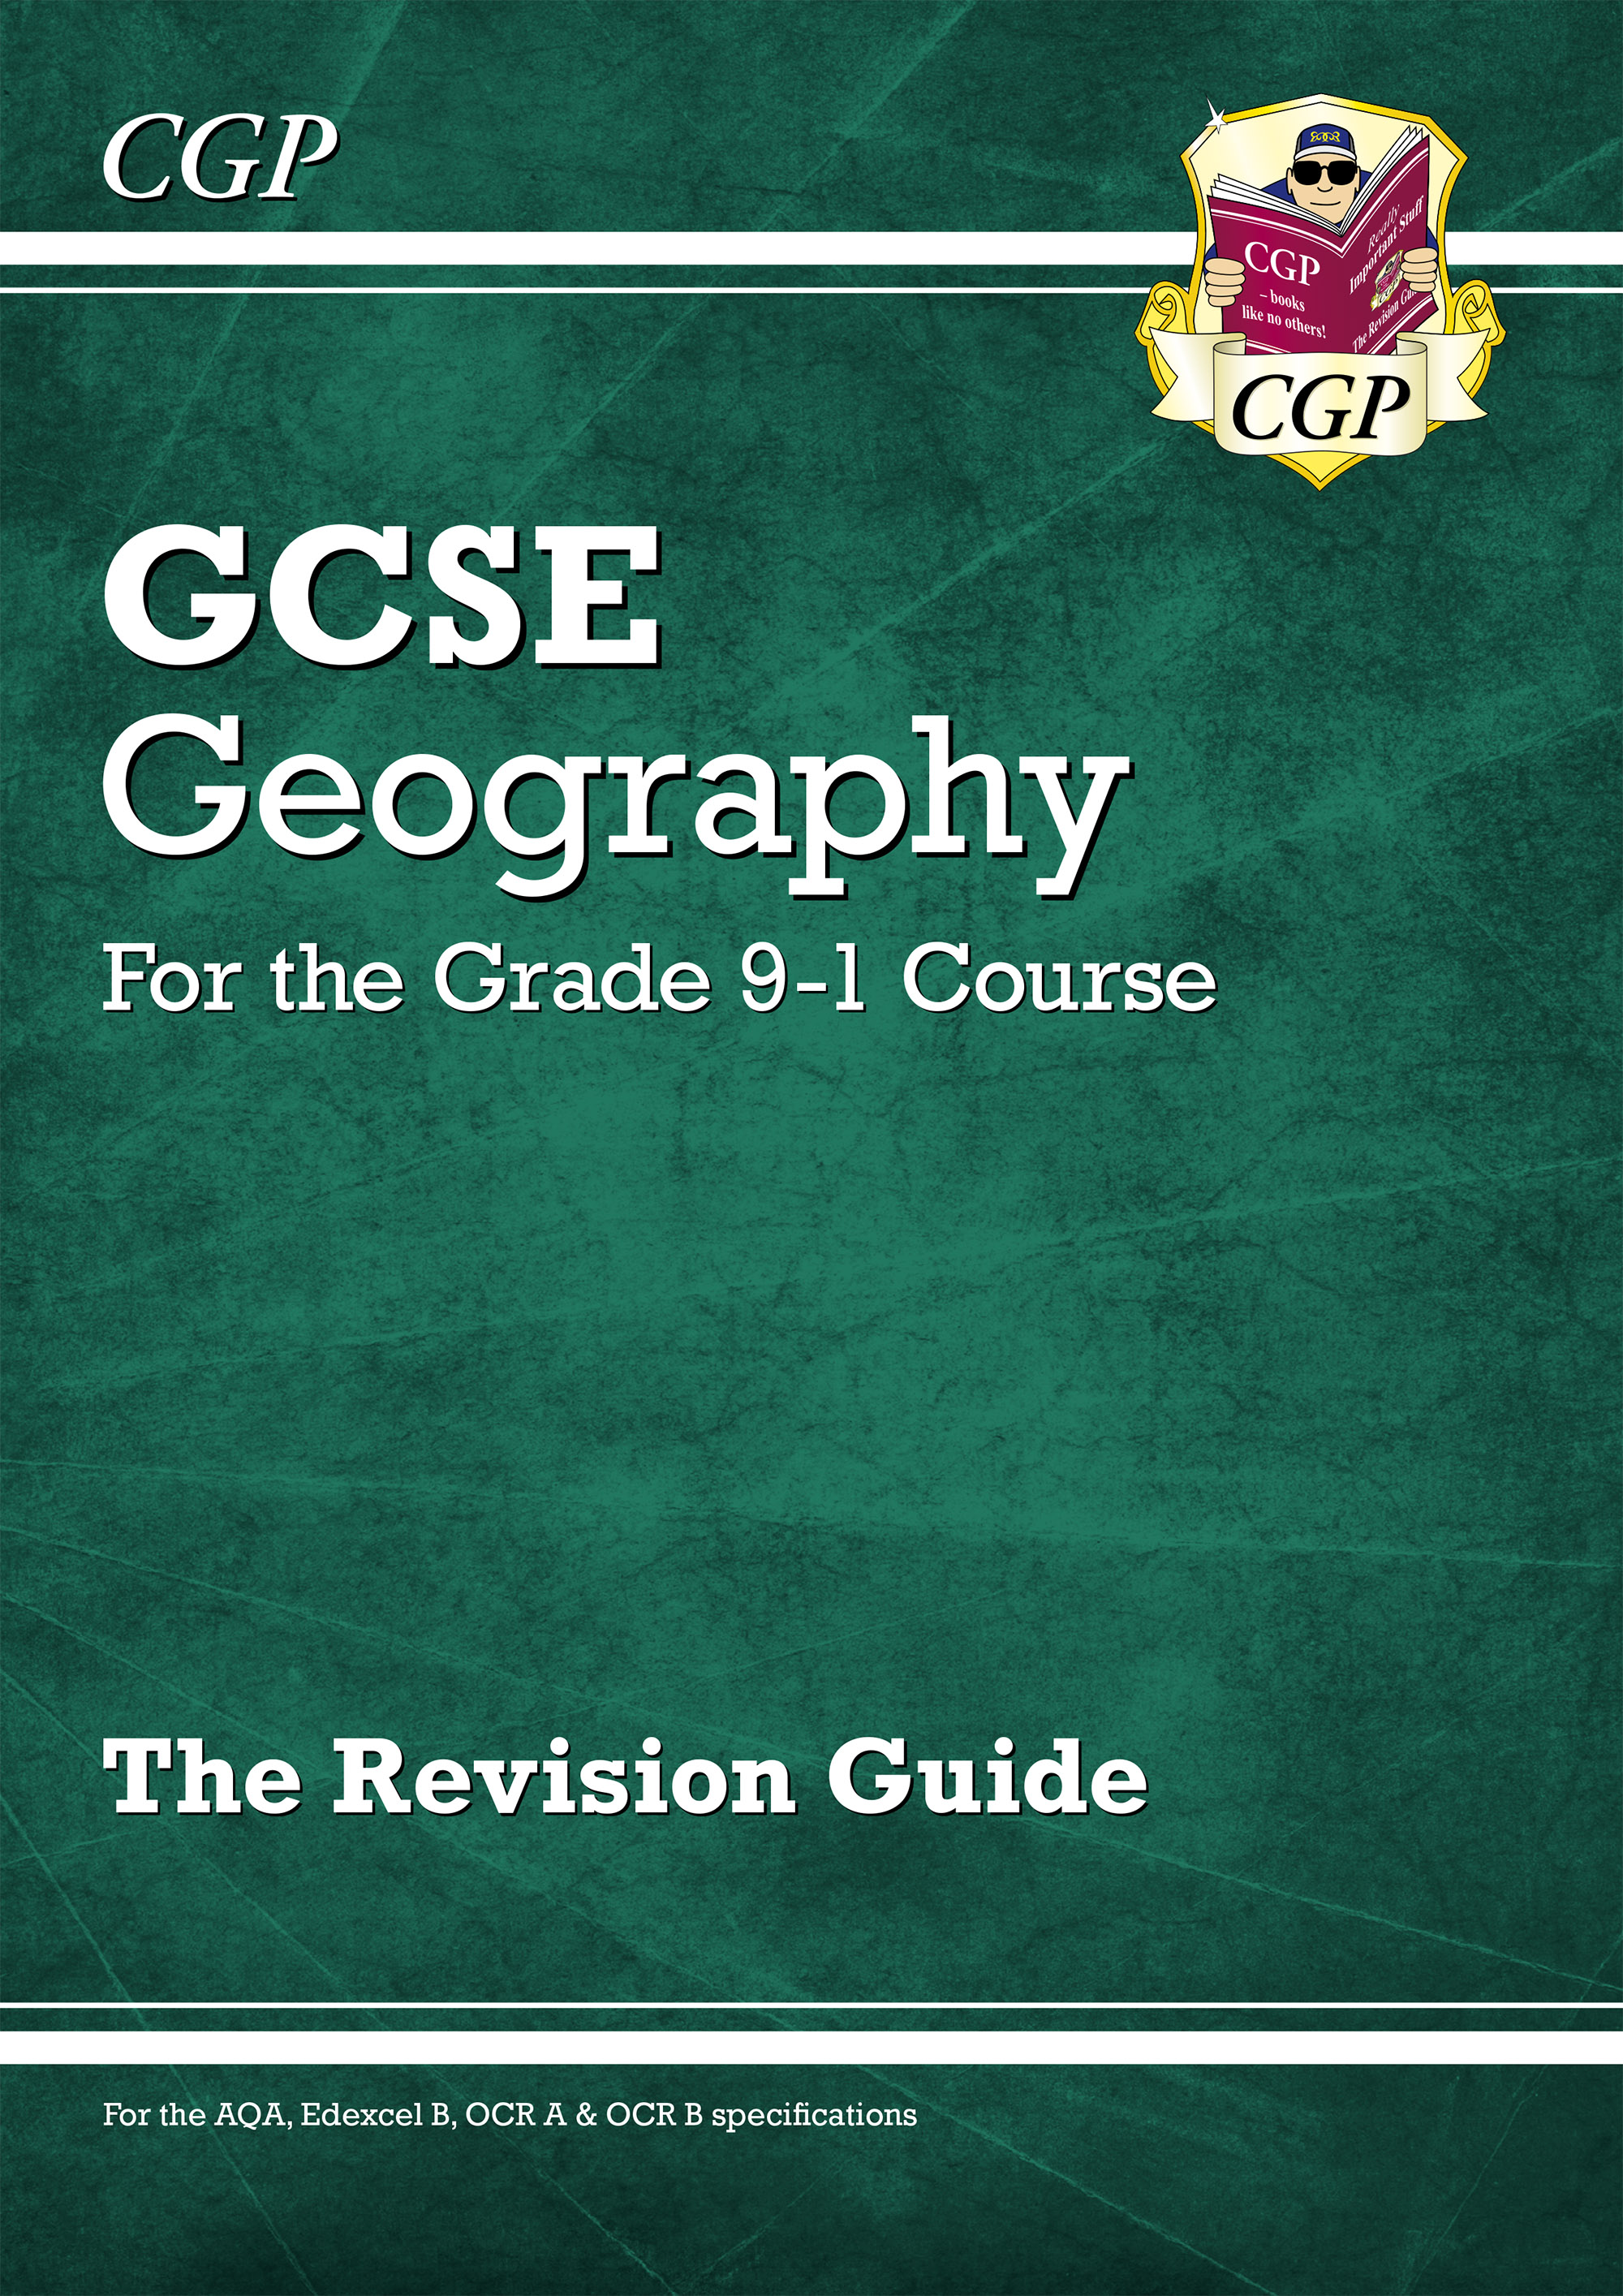 GHR44DK - New Grade 9-1 GCSE Geography Revision Guide